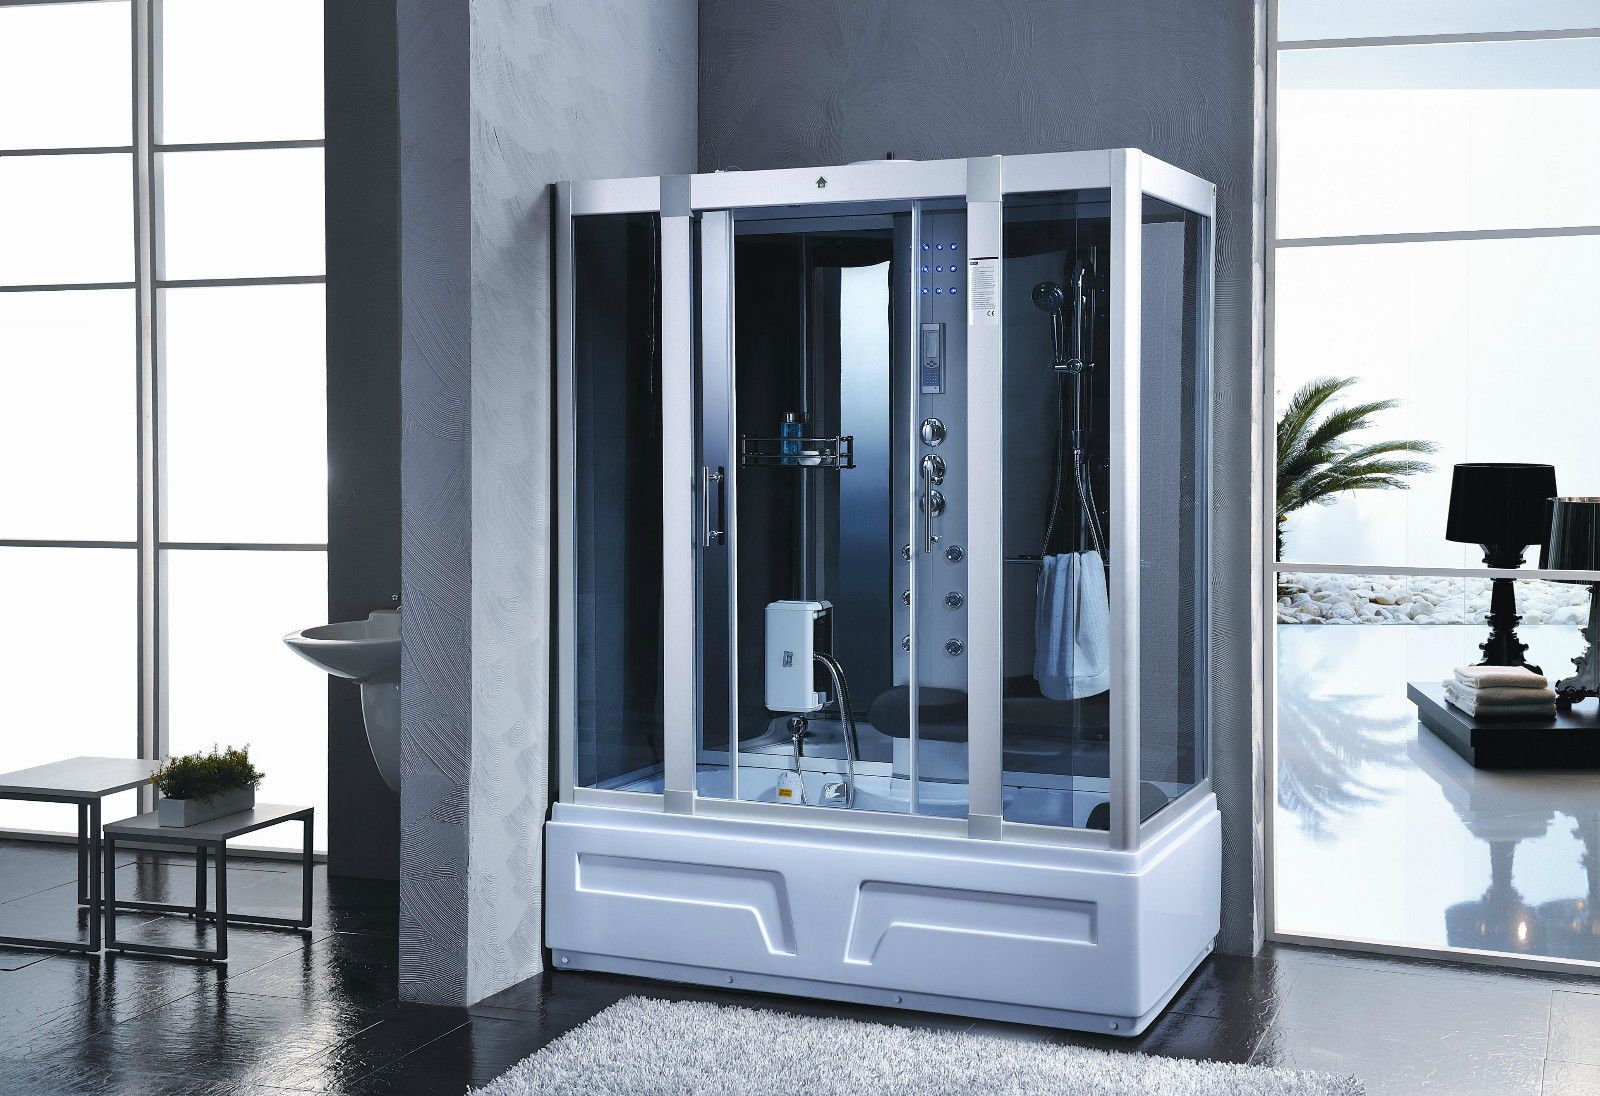 1600x850 Steam Shower Room Enclosure Cabin With Jacuzzi Whirlpool ...